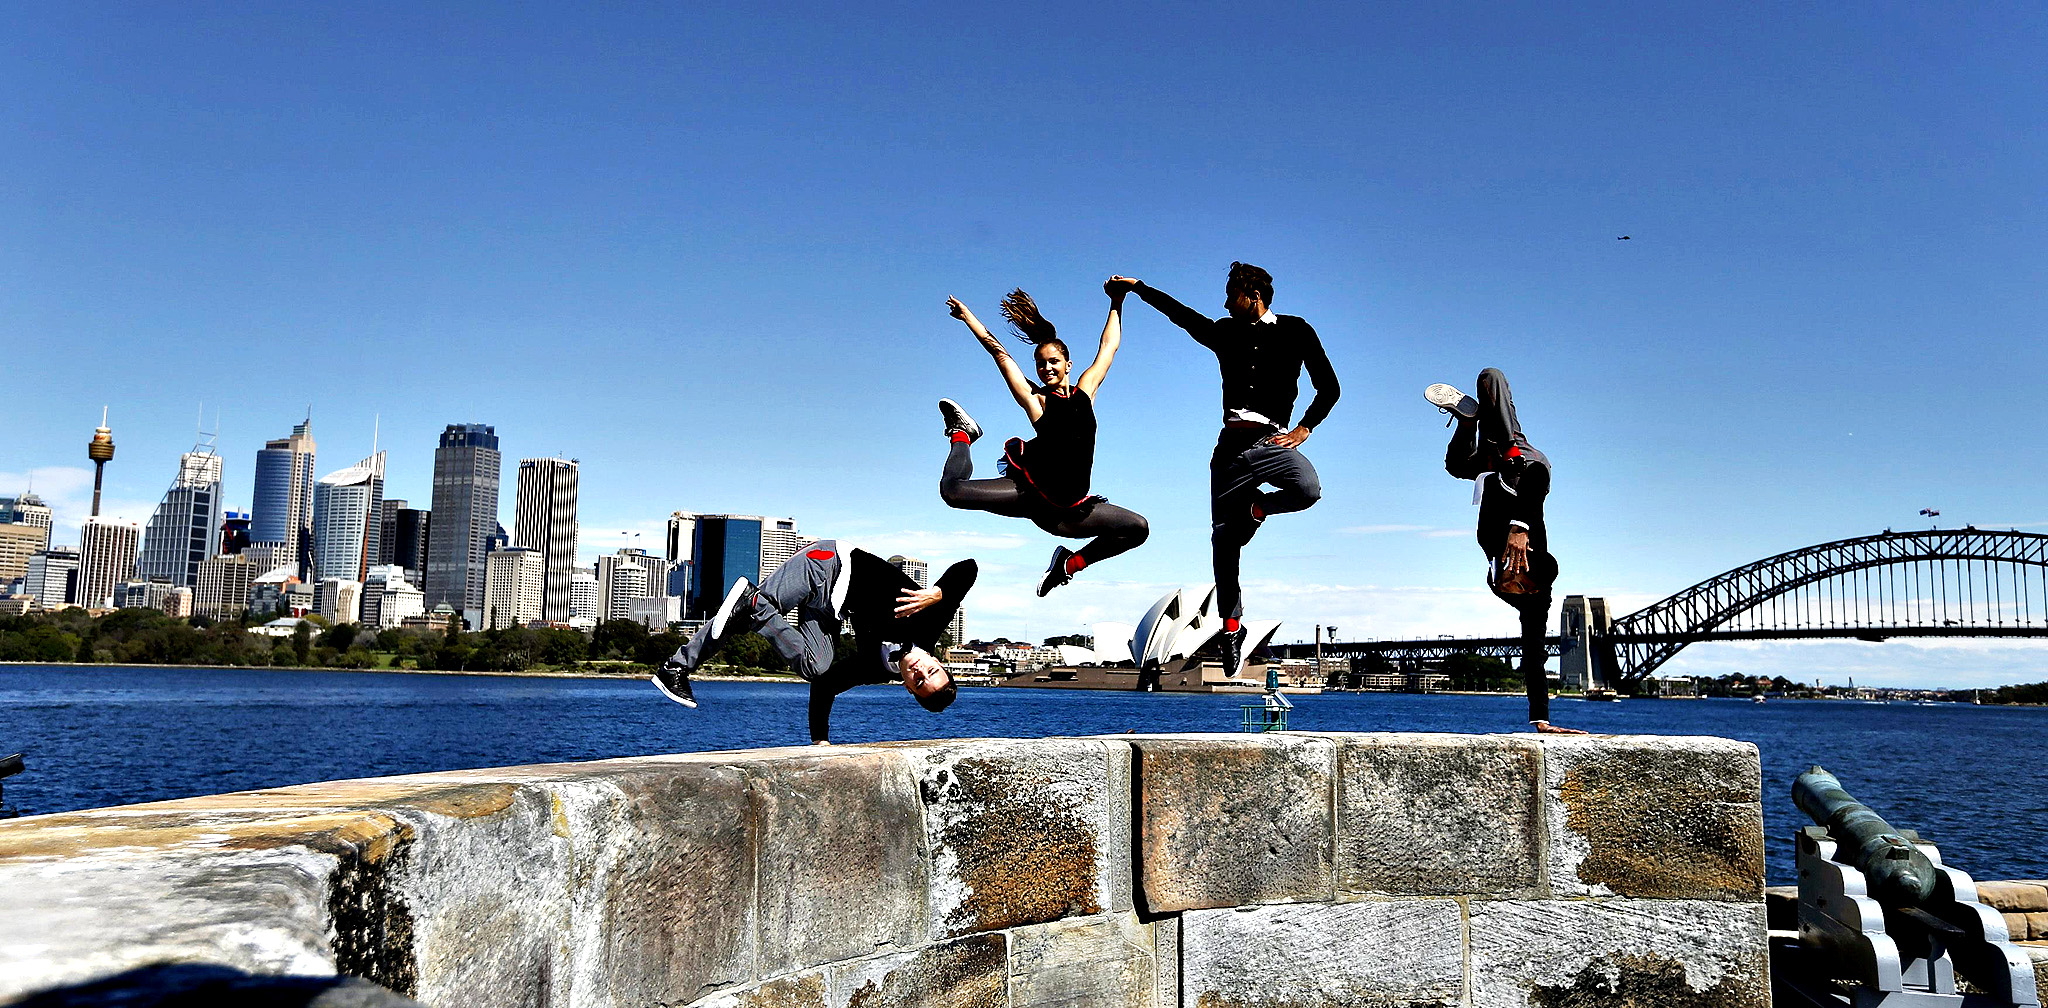 Members of the Red Bull Flying Bach dance troupe perform on Sydney Harbour's Fort Denison during a photo call, in Sydney September 9, 2014. The group, in Australia as part of their world tour, perform acrobatic dance to the classical music of German composer Johann Sebastian Bach with combined with electronic beats. Pictured are (L-R) Tim Mandriamanantena, Anna Holmstrom, Nordine-Dany Grimah and Yamine Manaa.